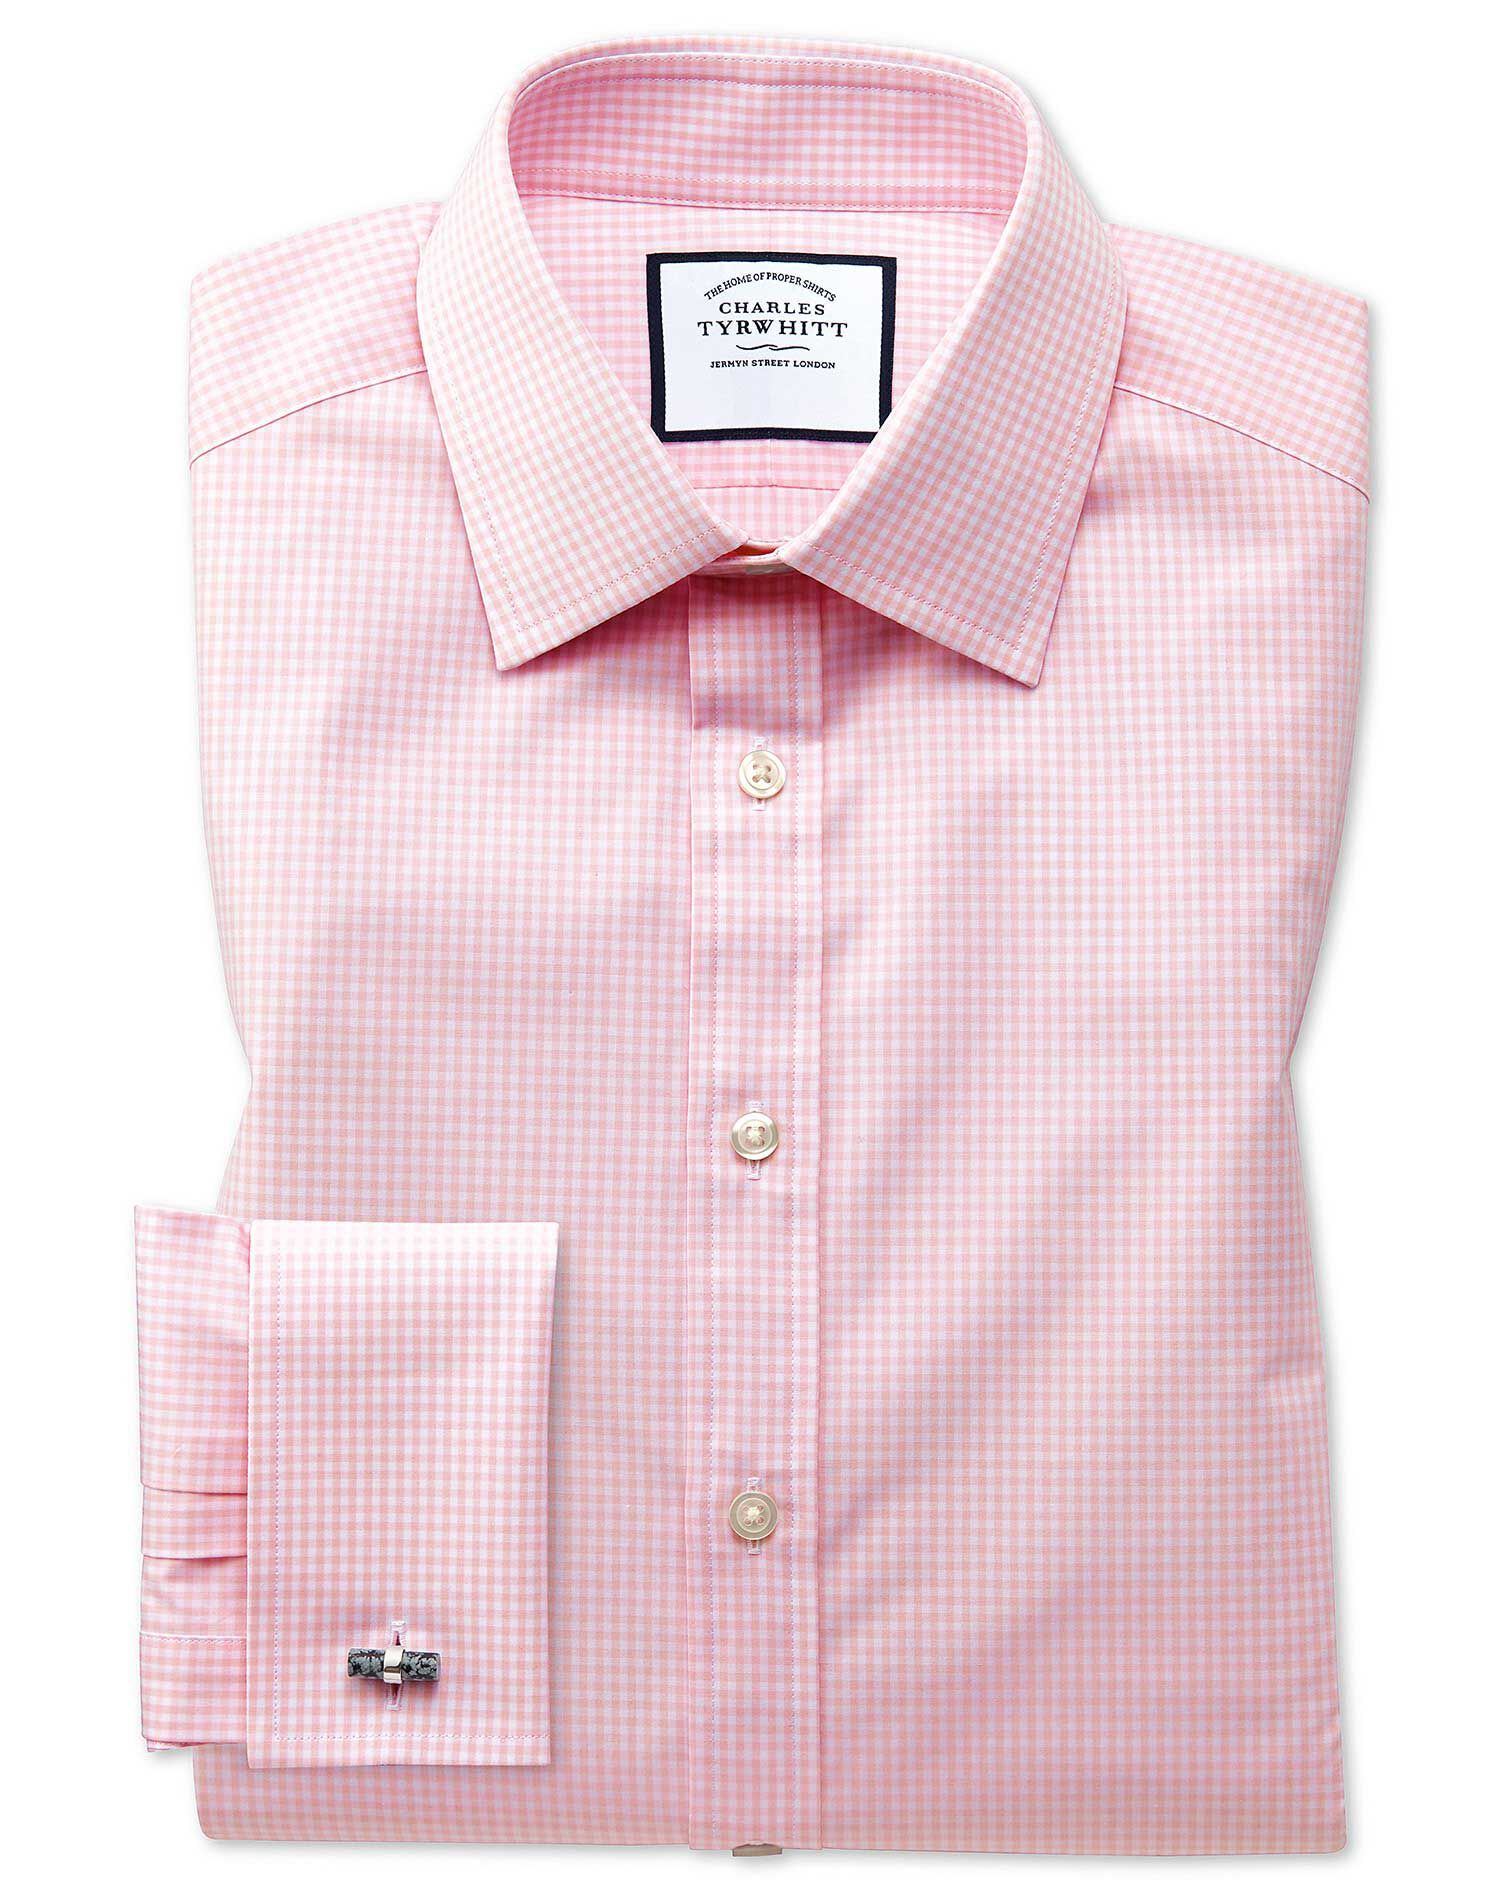 Classic Fit Small Gingham Light Pink Cotton Formal Shirt Double Cuff Size 20/37 by Charles Tyrwhitt